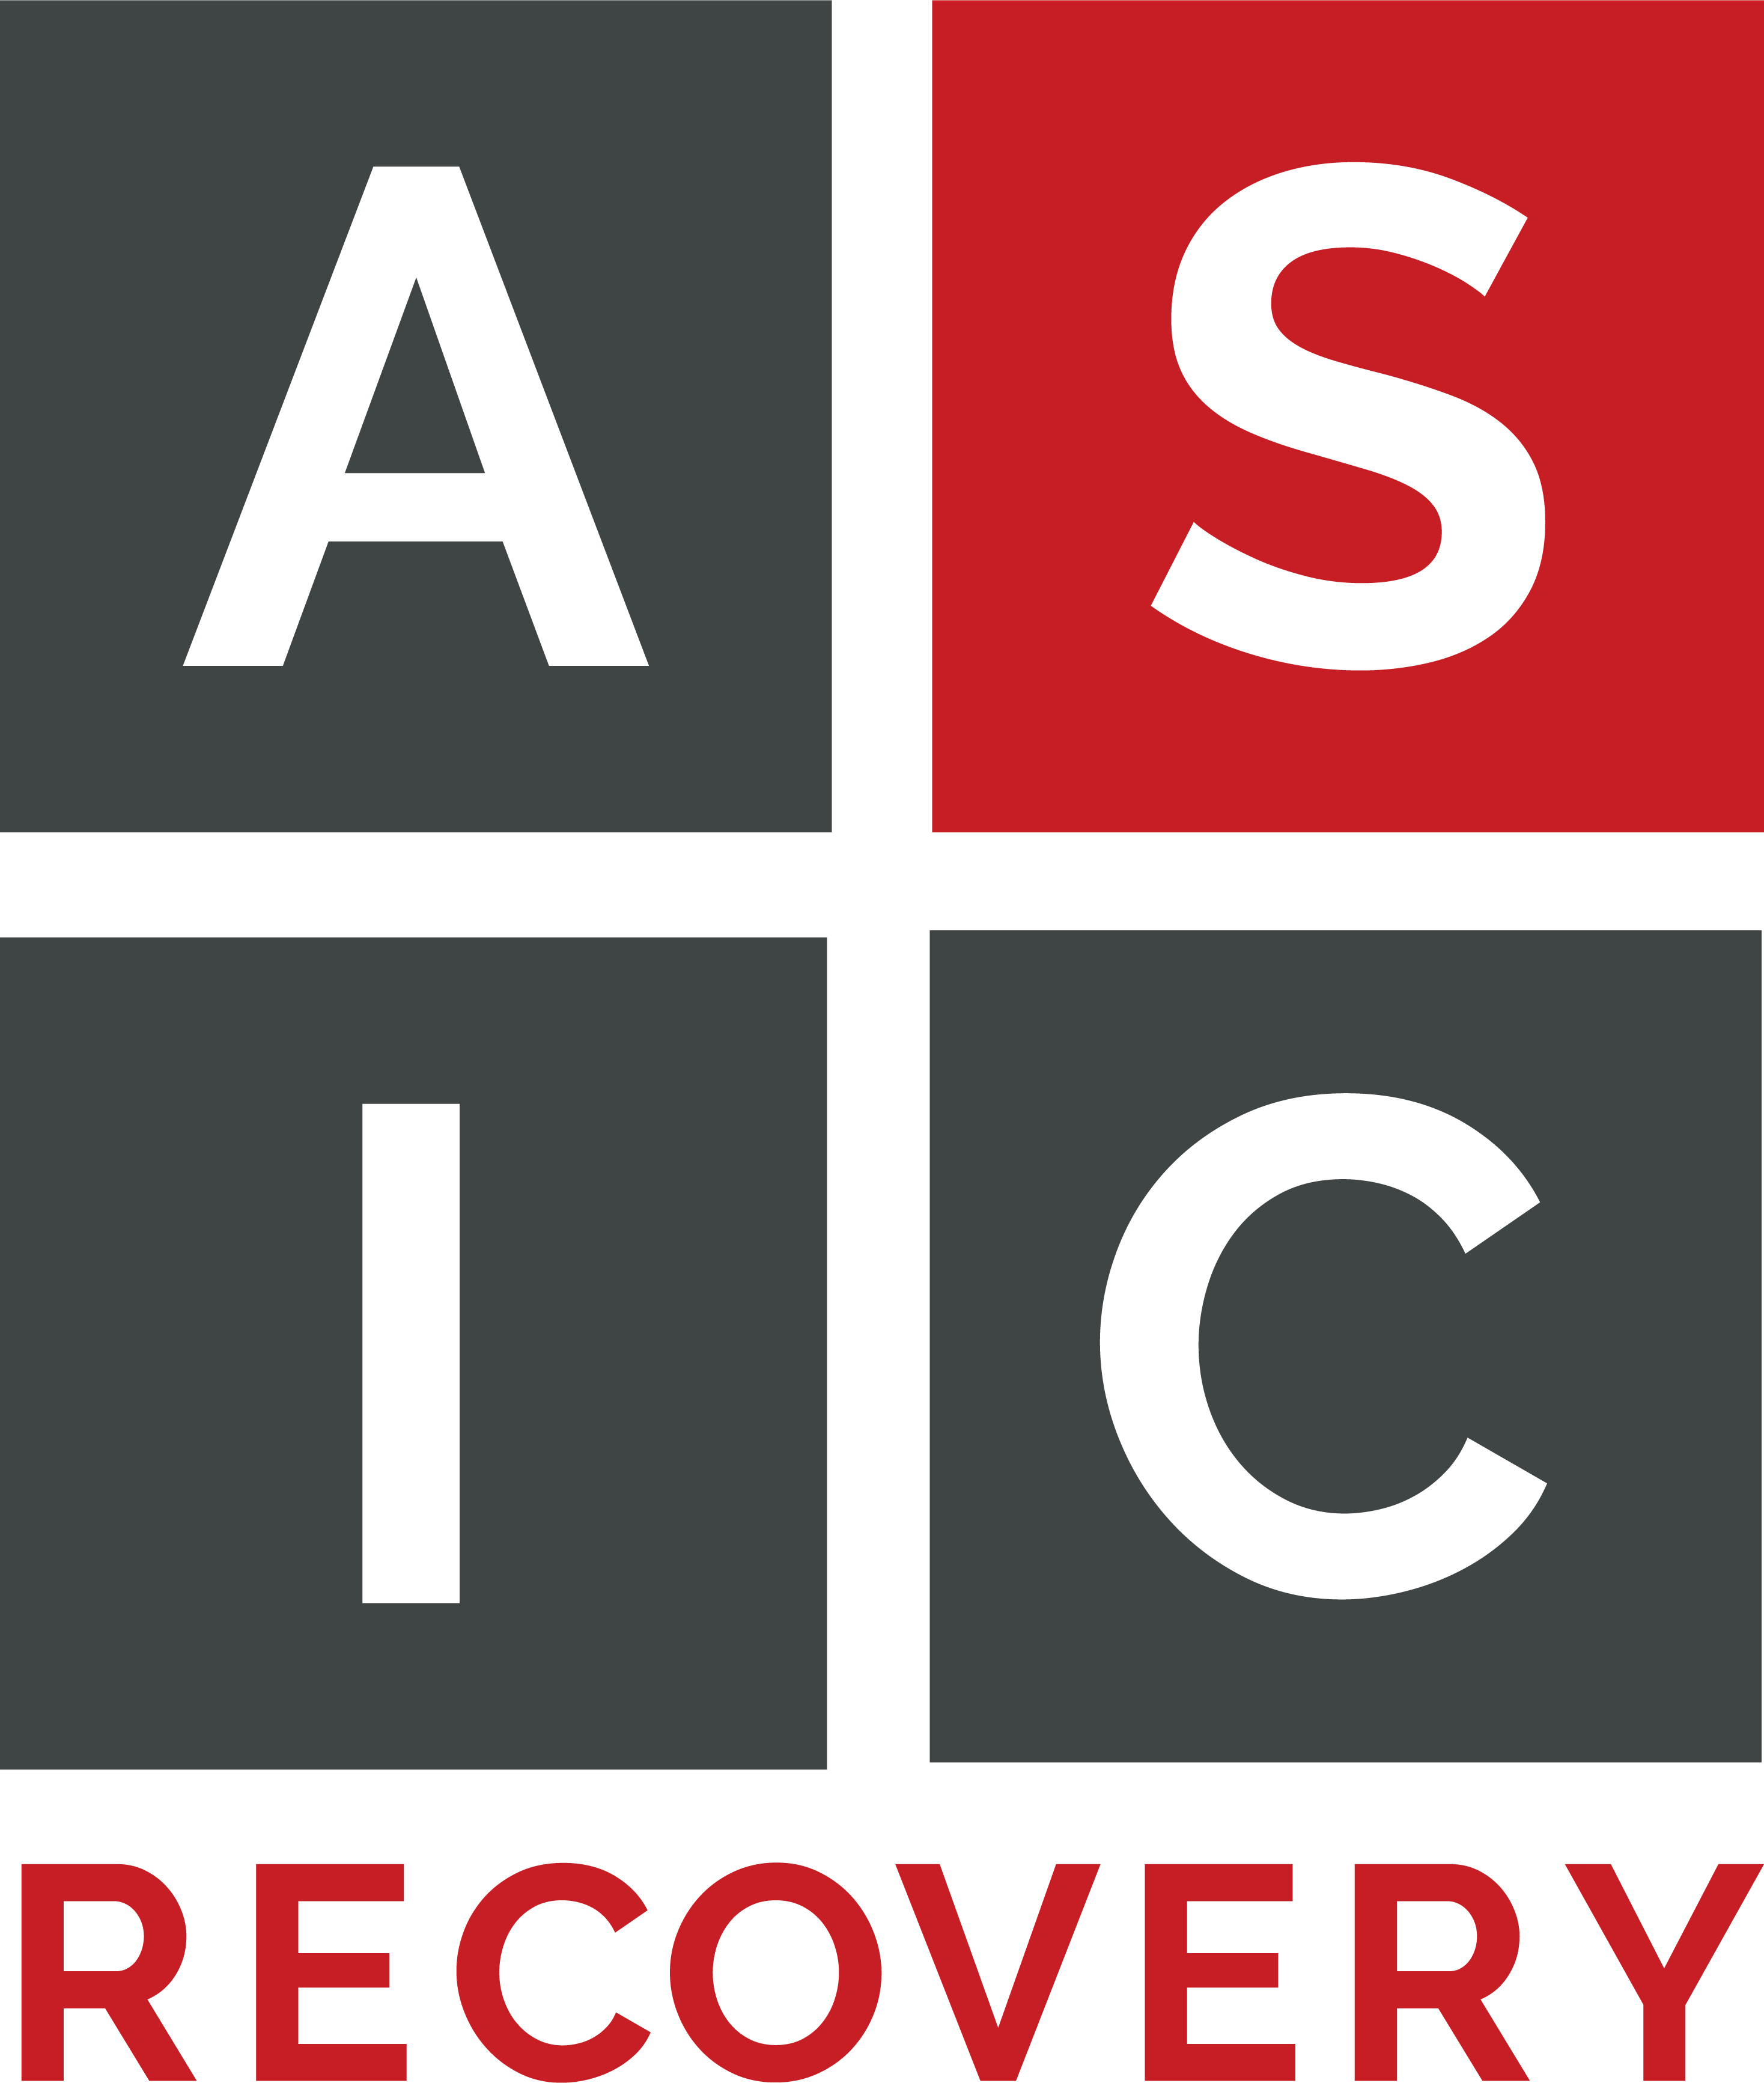 ASIC Recovery Logo